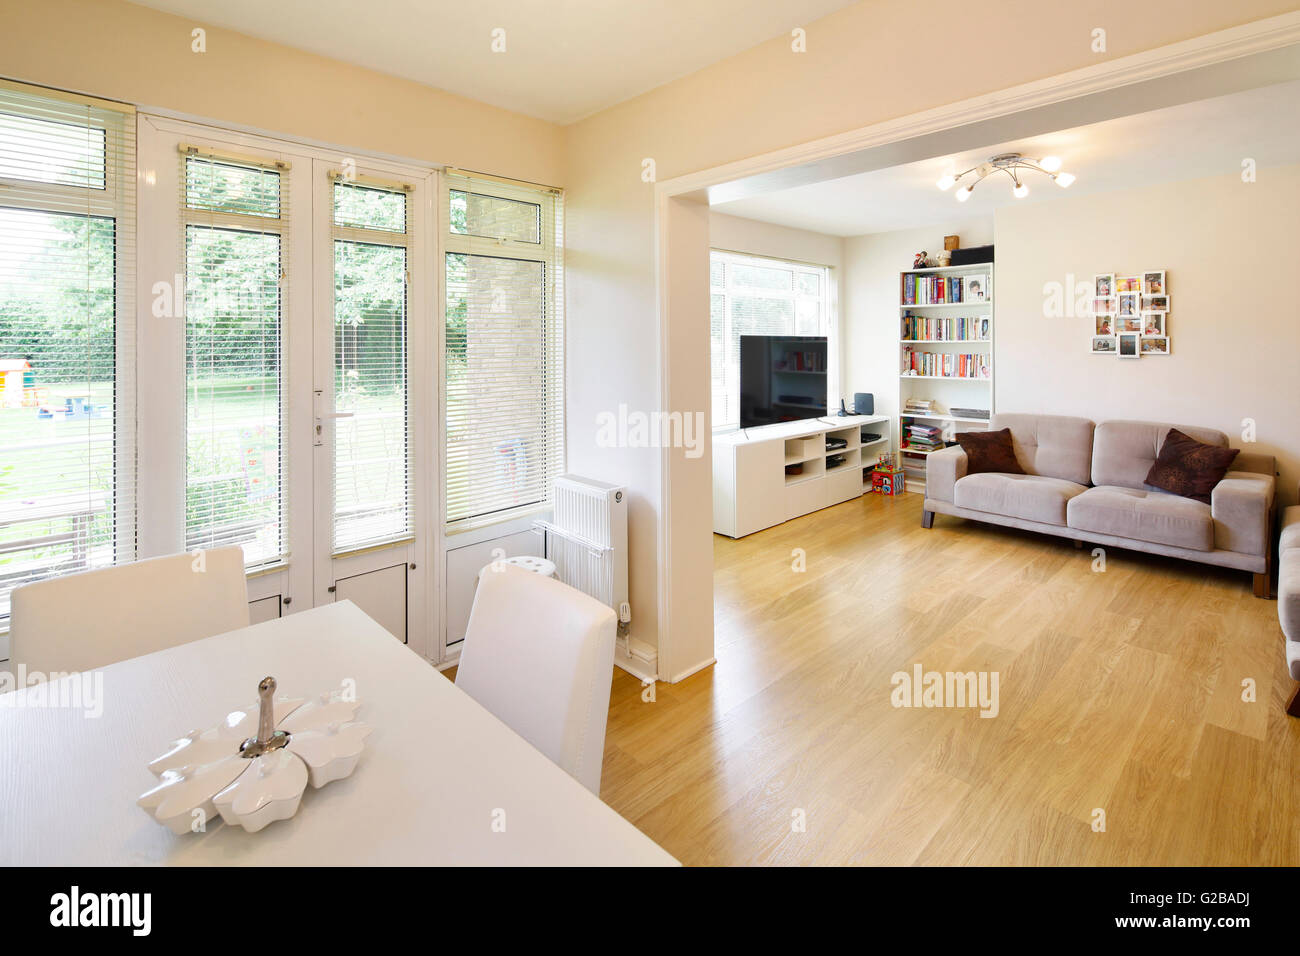 Ellington Court, Southgate. Open Plan Living And Dining Area With  Contemporary Furniture And Minimal Decoration. Patio Doors Leading To The  Backyard, ...